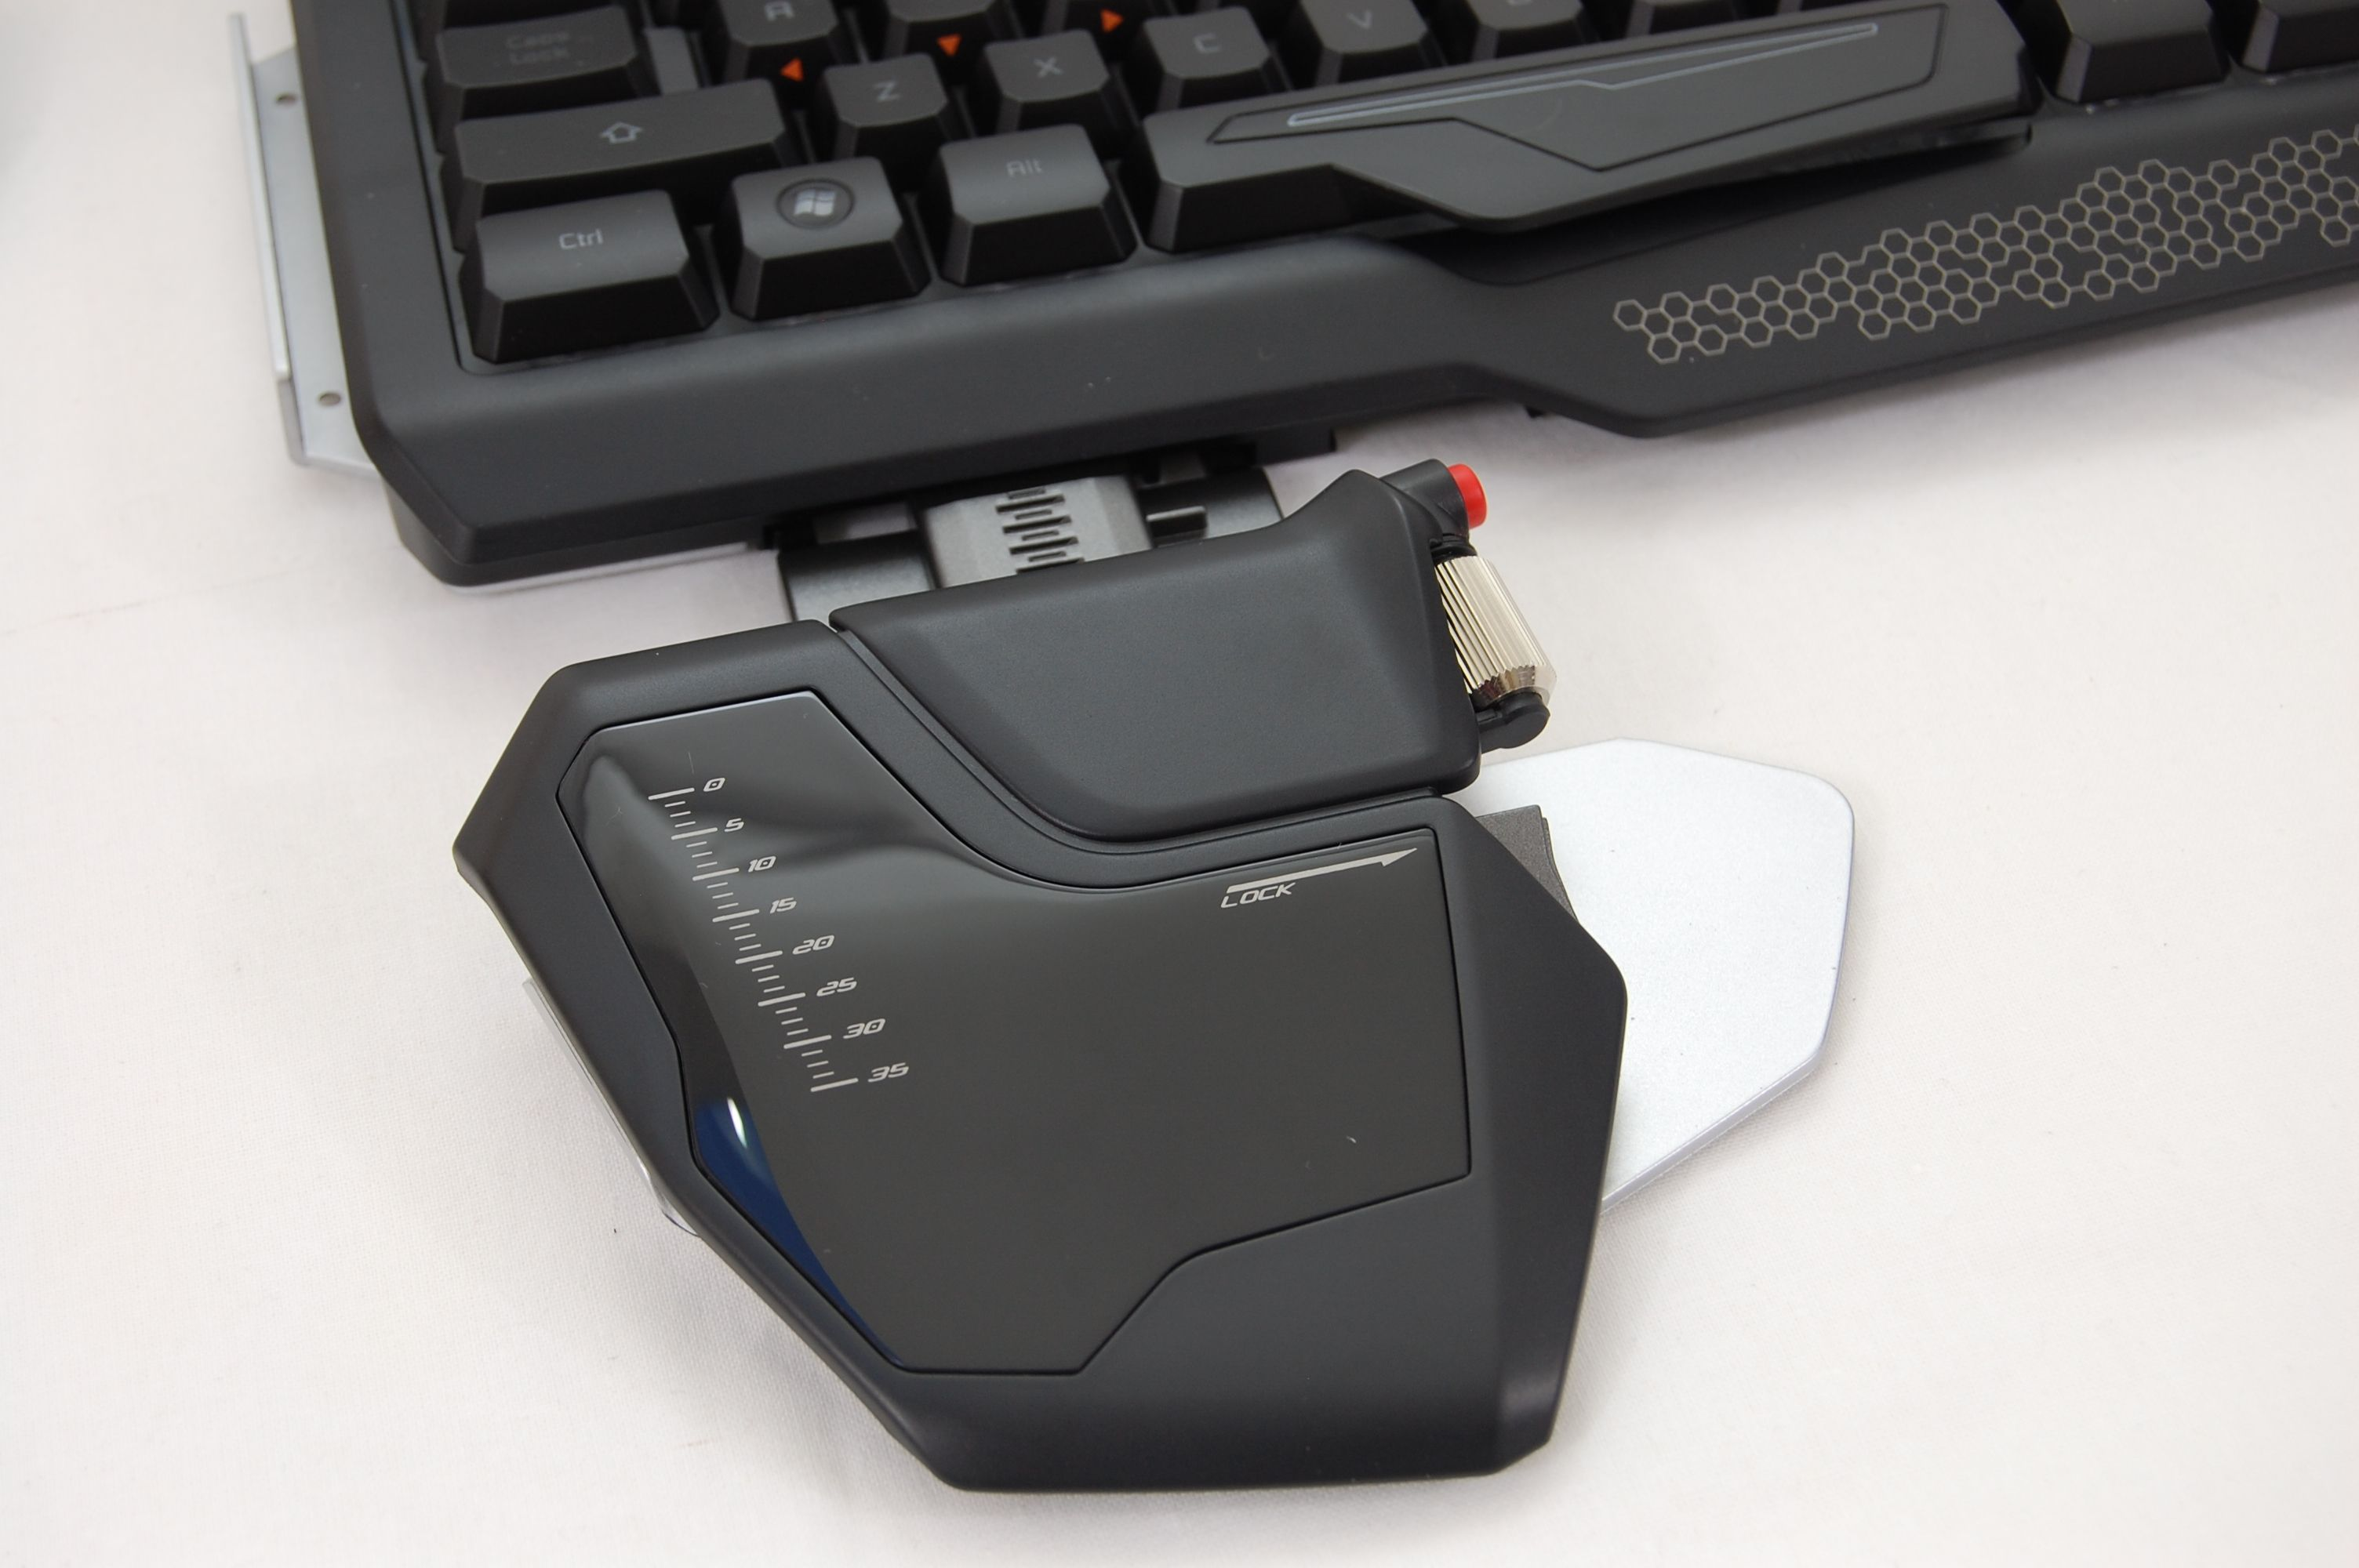 MadCatz-Strike5-Keyboard-Wrist-Rest-Attach